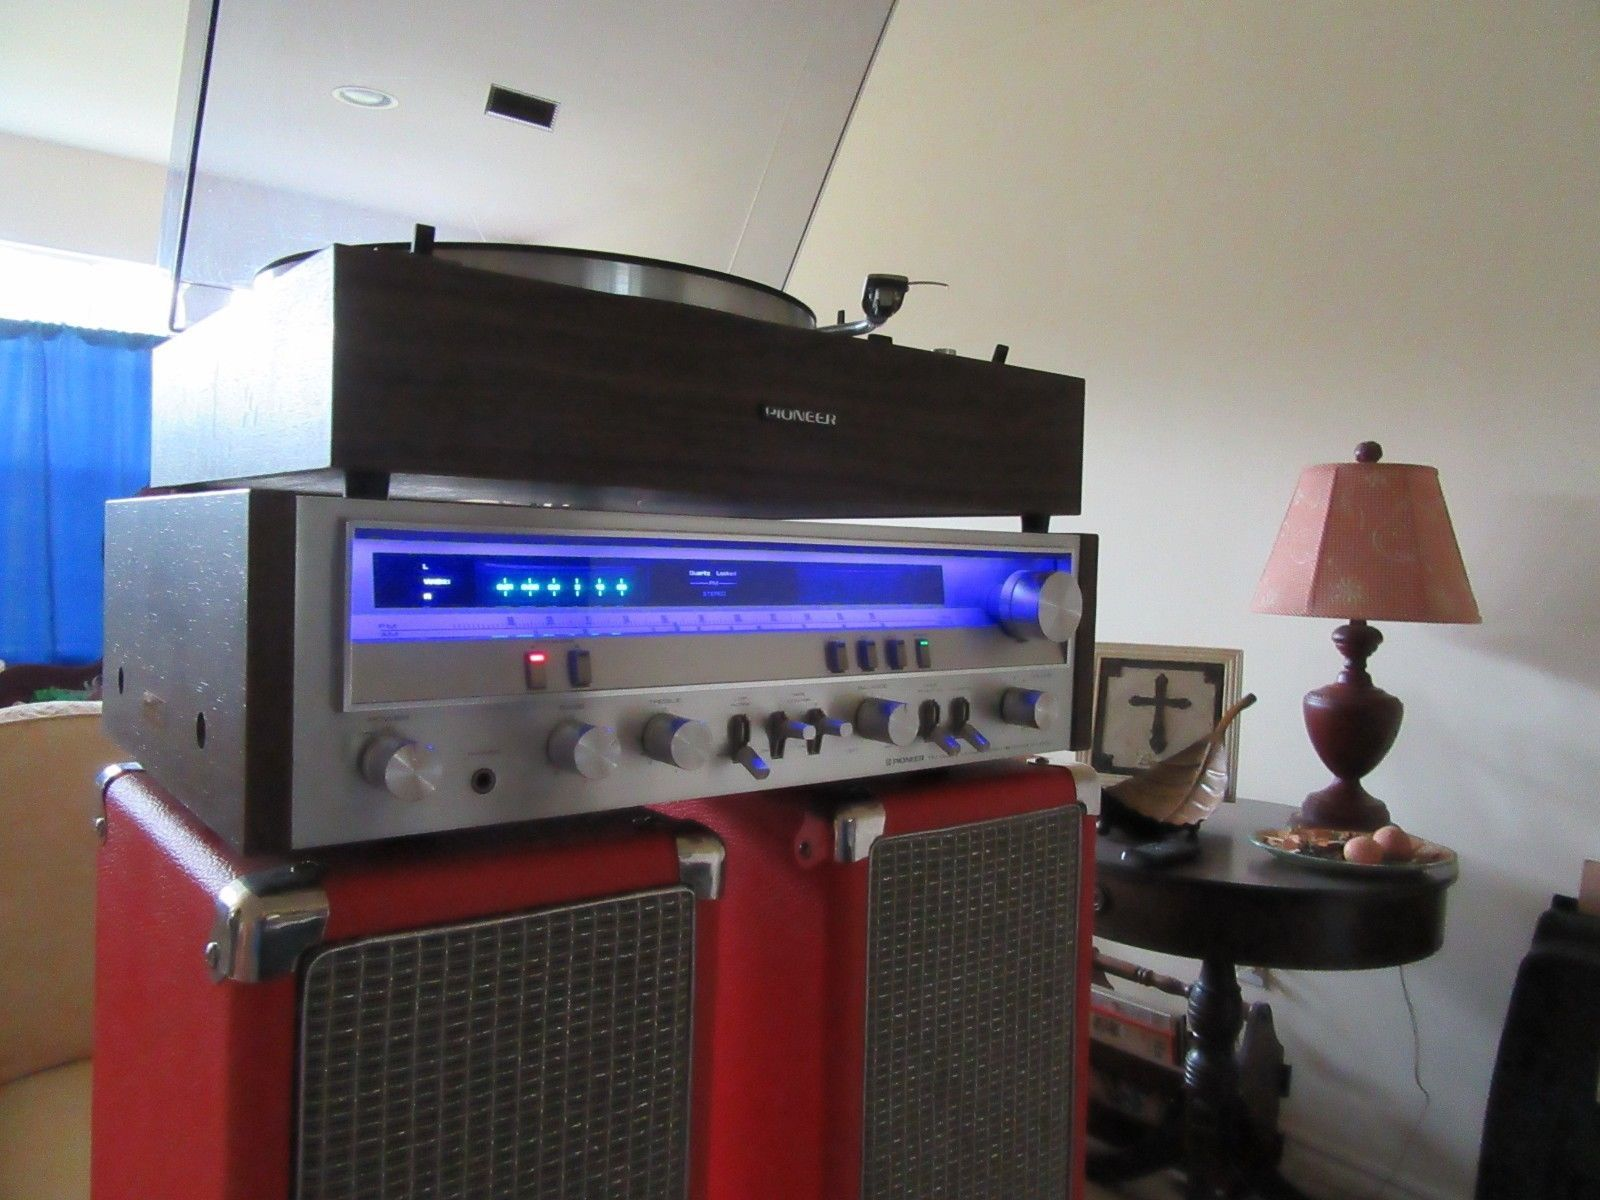 45 WPC PIONEER SX-3700 VINTAGE STEREO RECEIVER LED LIGHTS